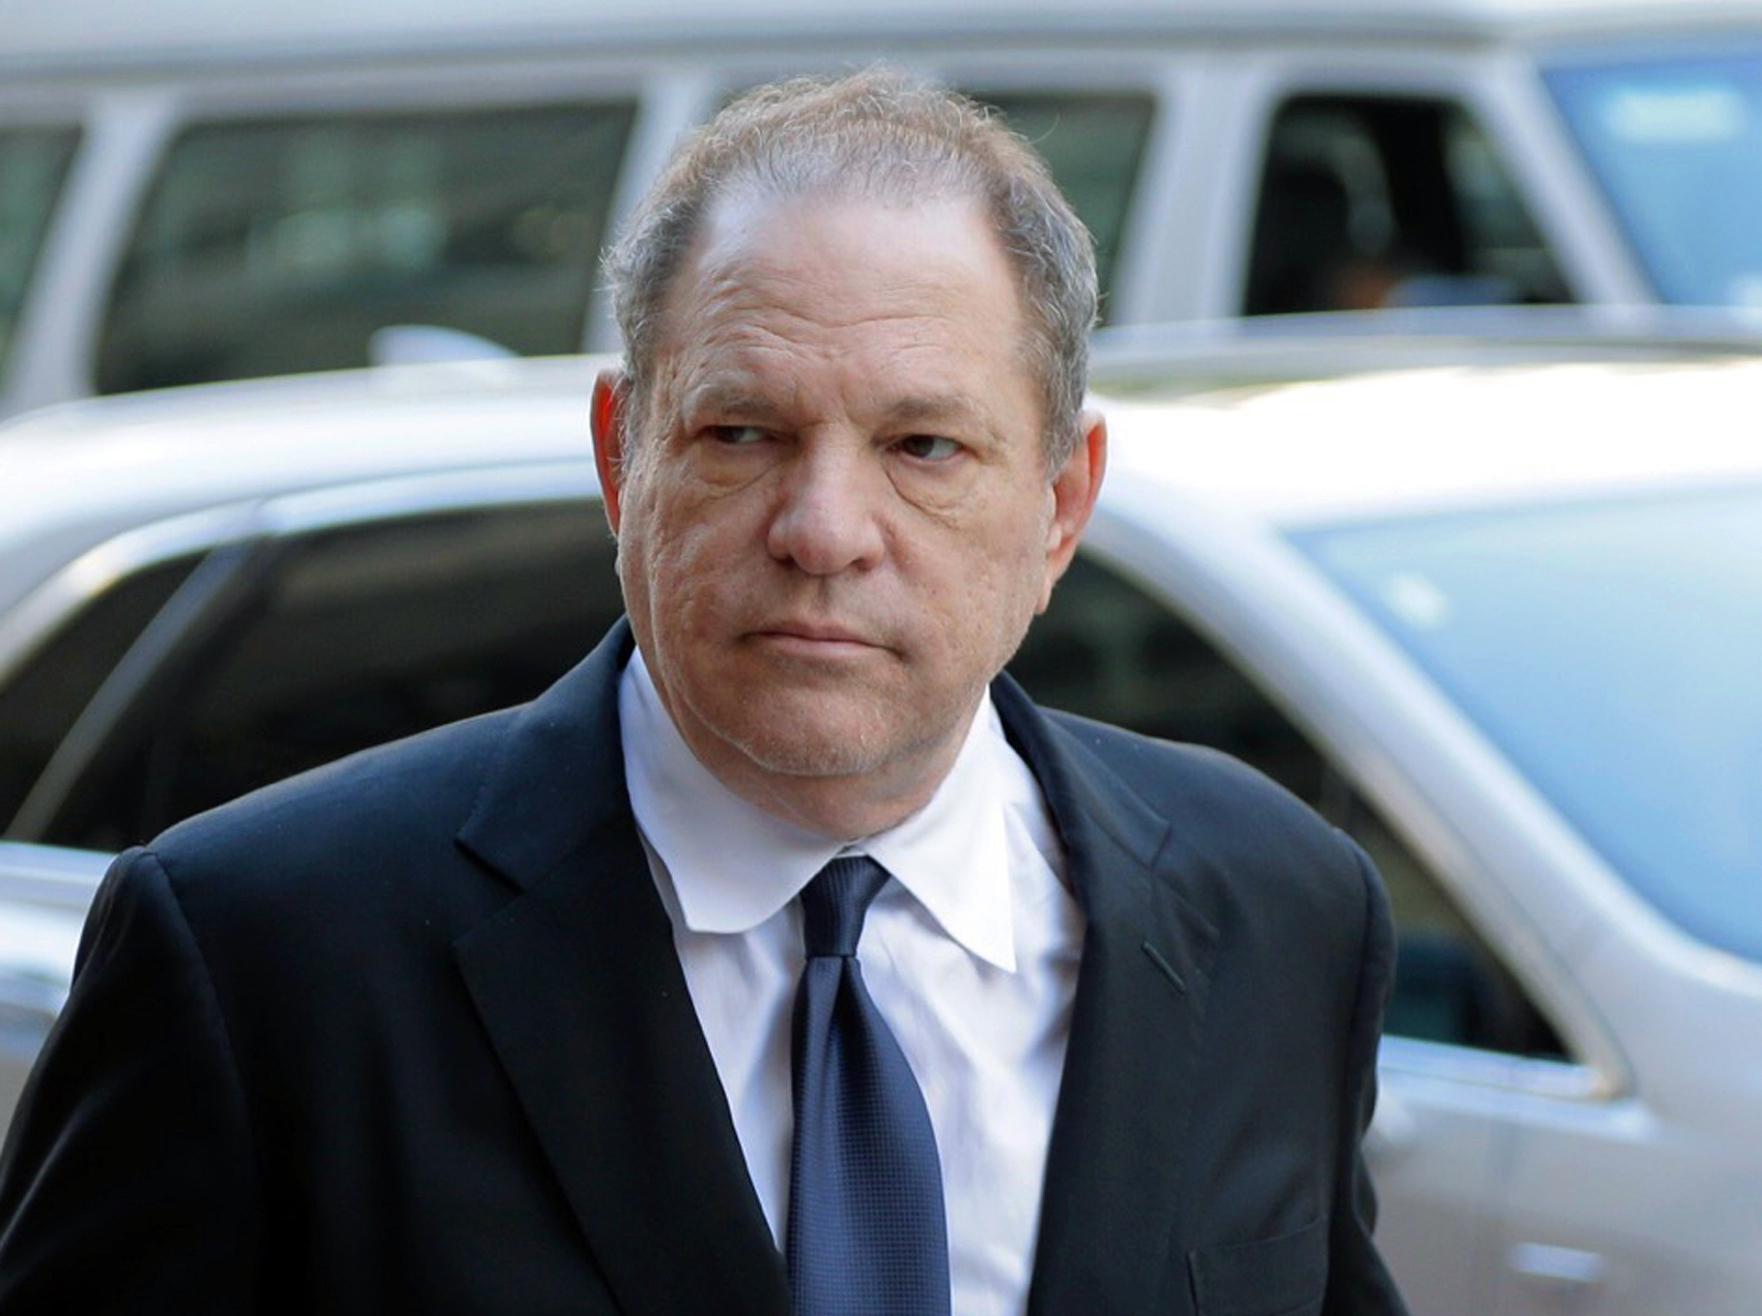 Westlake Legal Group AP19331835525494 Judge denies Harvey Weinstein motion to dismiss key charges in New York sex crimes case Mariah Haas fox-news/entertainment/events/scandal fox-news/entertainment/events/in-court fox-news/entertainment fox news fnc/entertainment fnc article 9c3c1196-47fa-5249-8584-313d375a2294